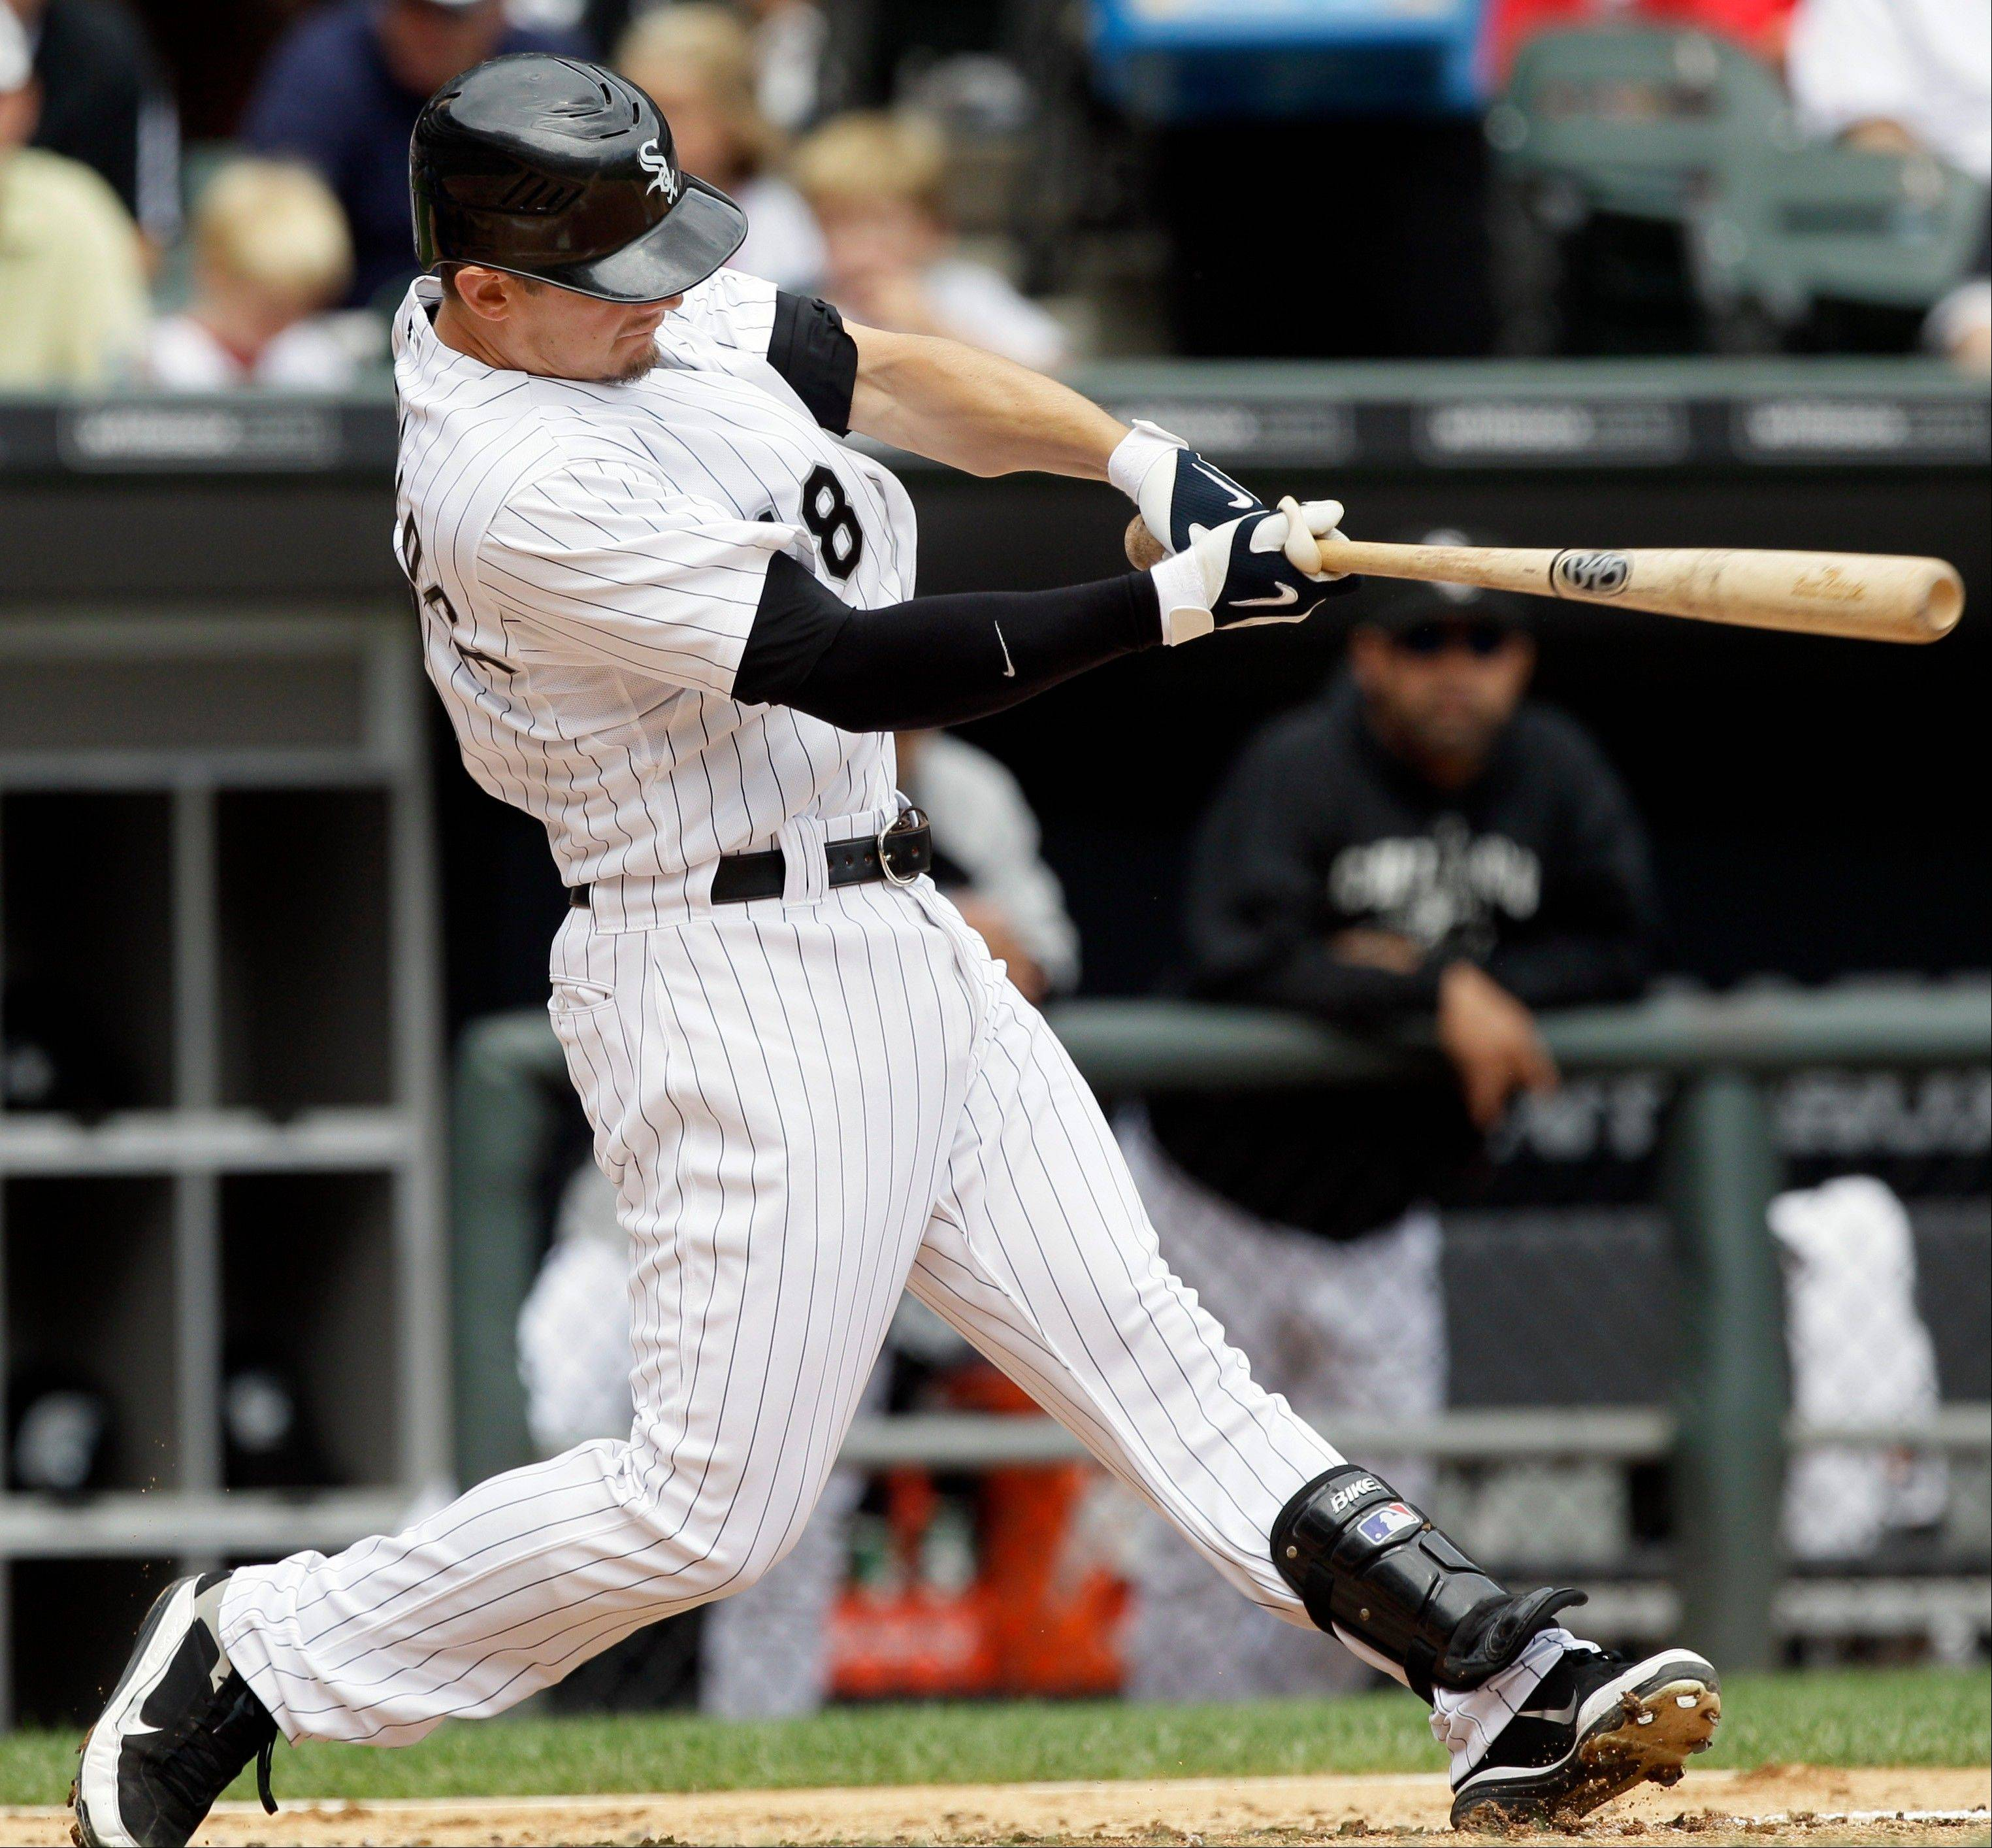 White Sox hitter Brent Lillibridge smacks a three-run home run during Sunday�s first inning at U.S. Cellular Field.